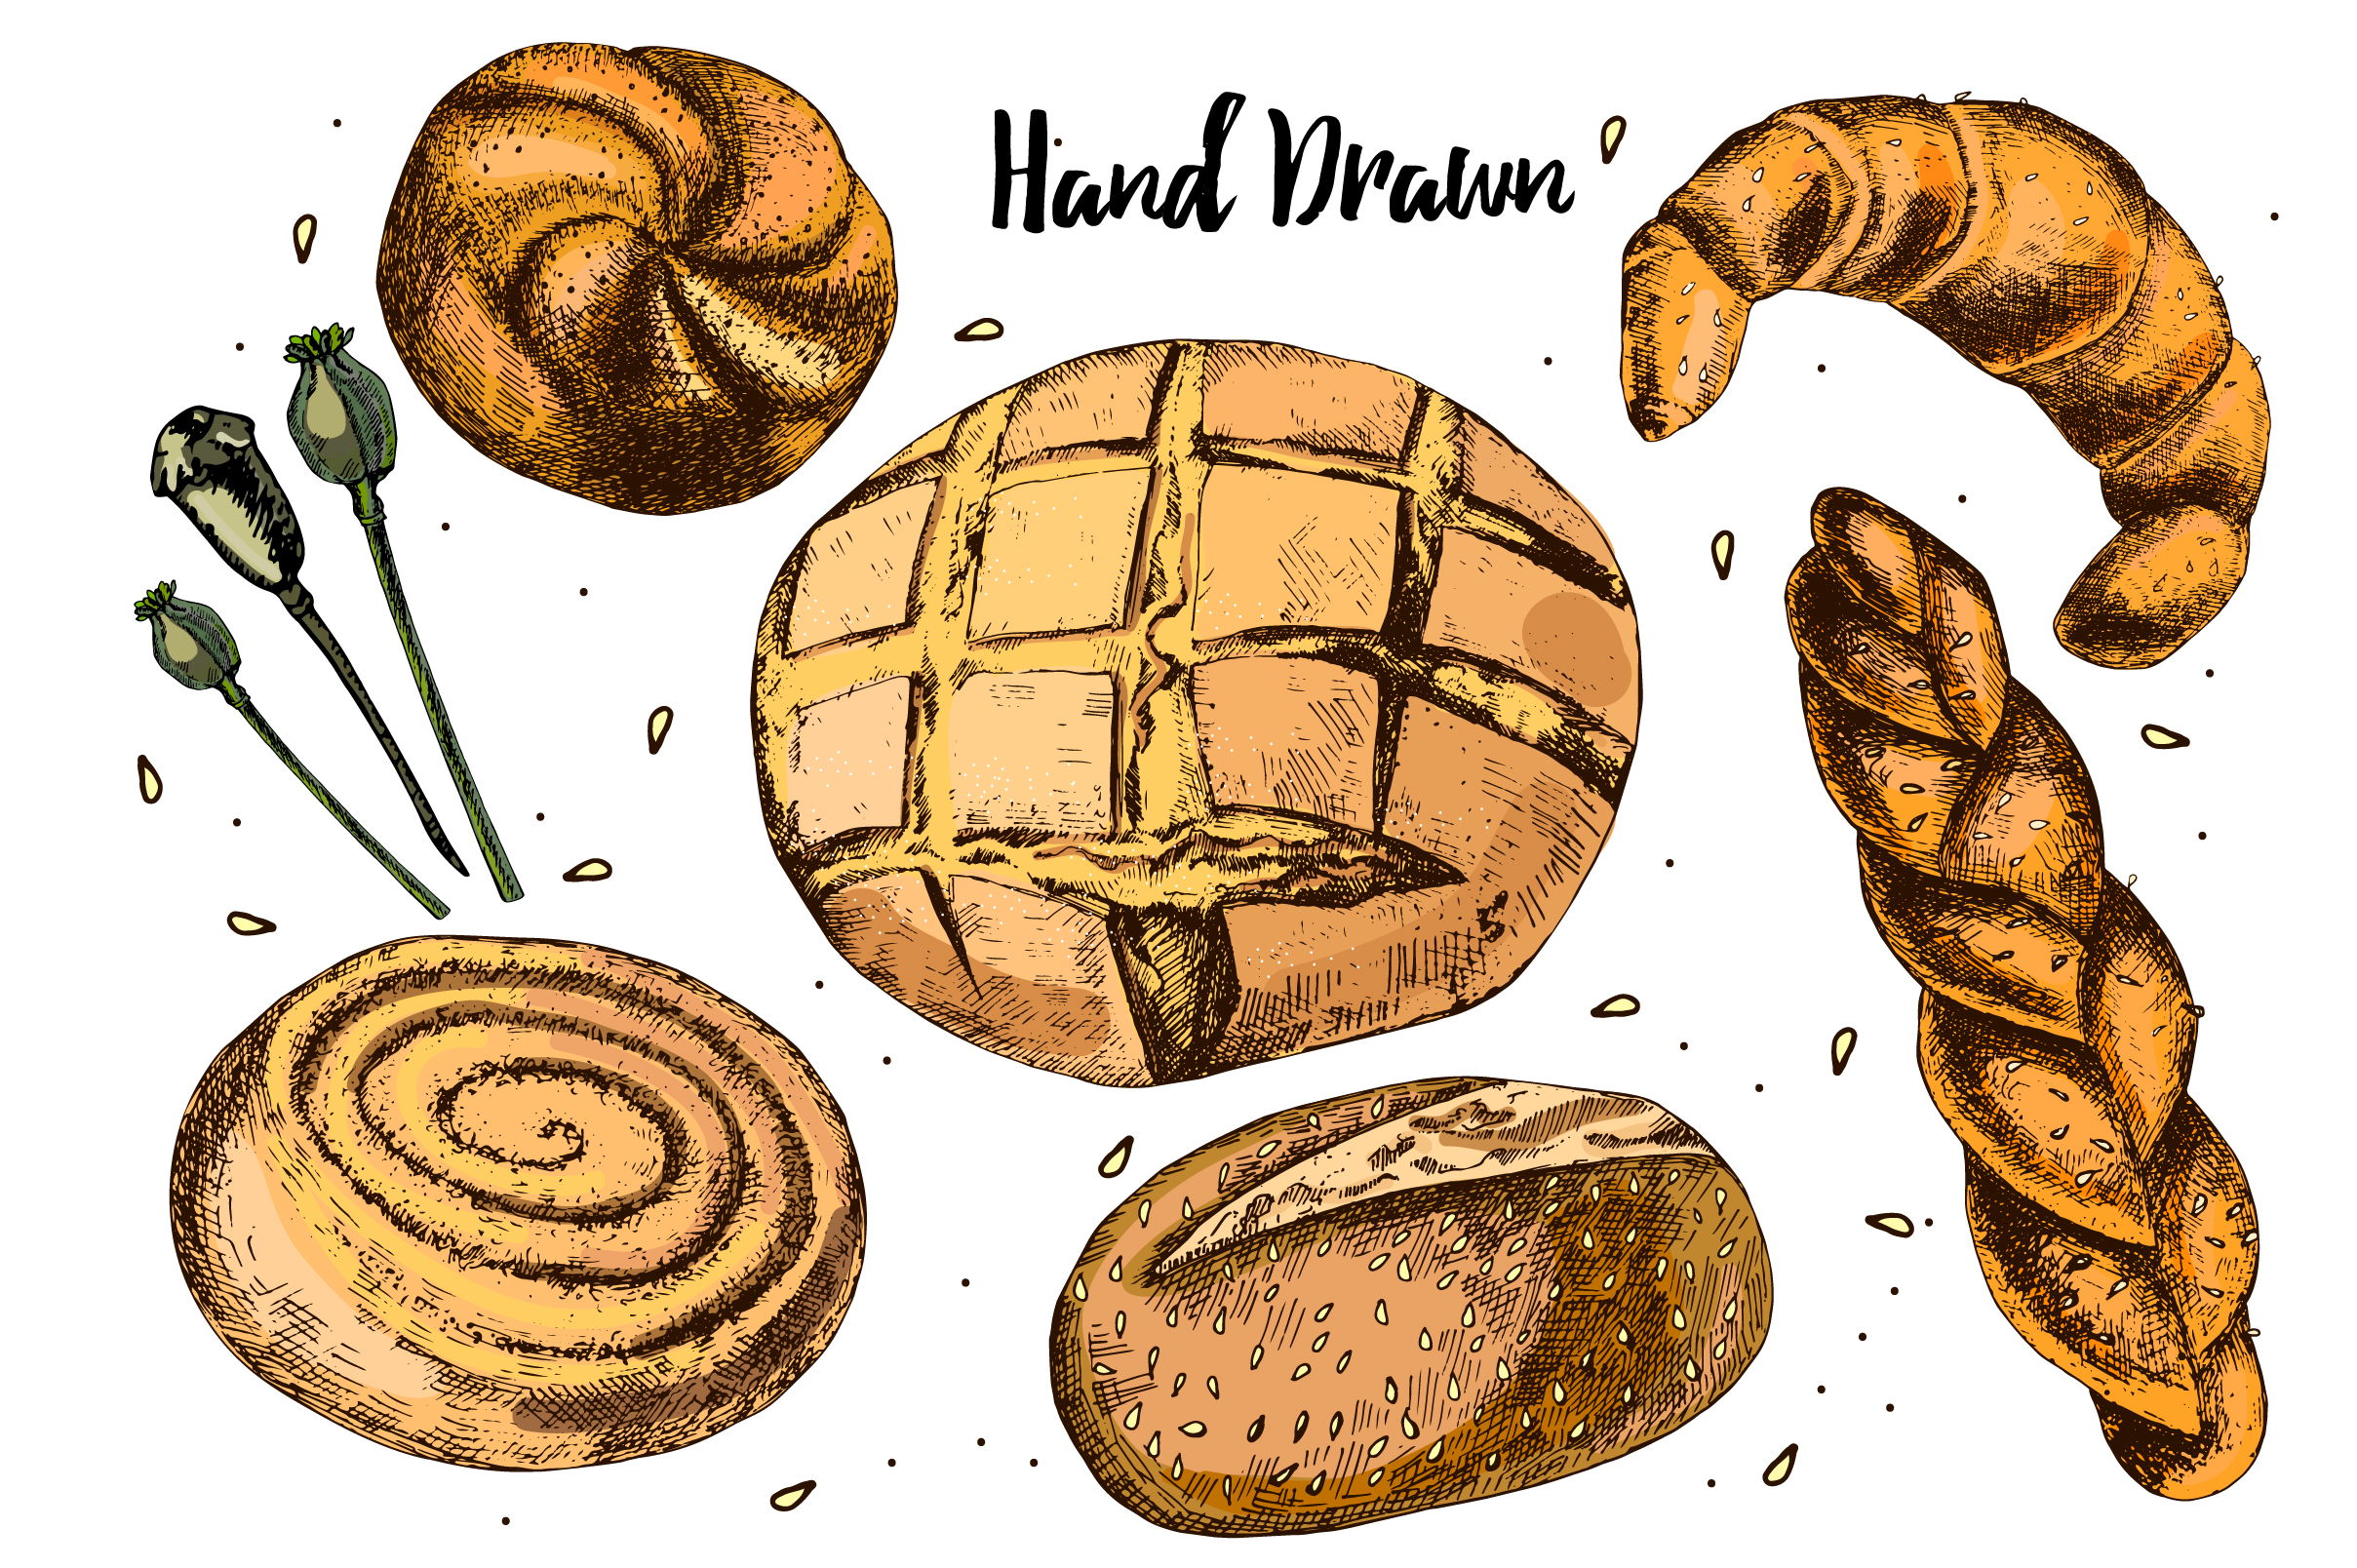 Bread and pastries. Hand drawing. example image 2